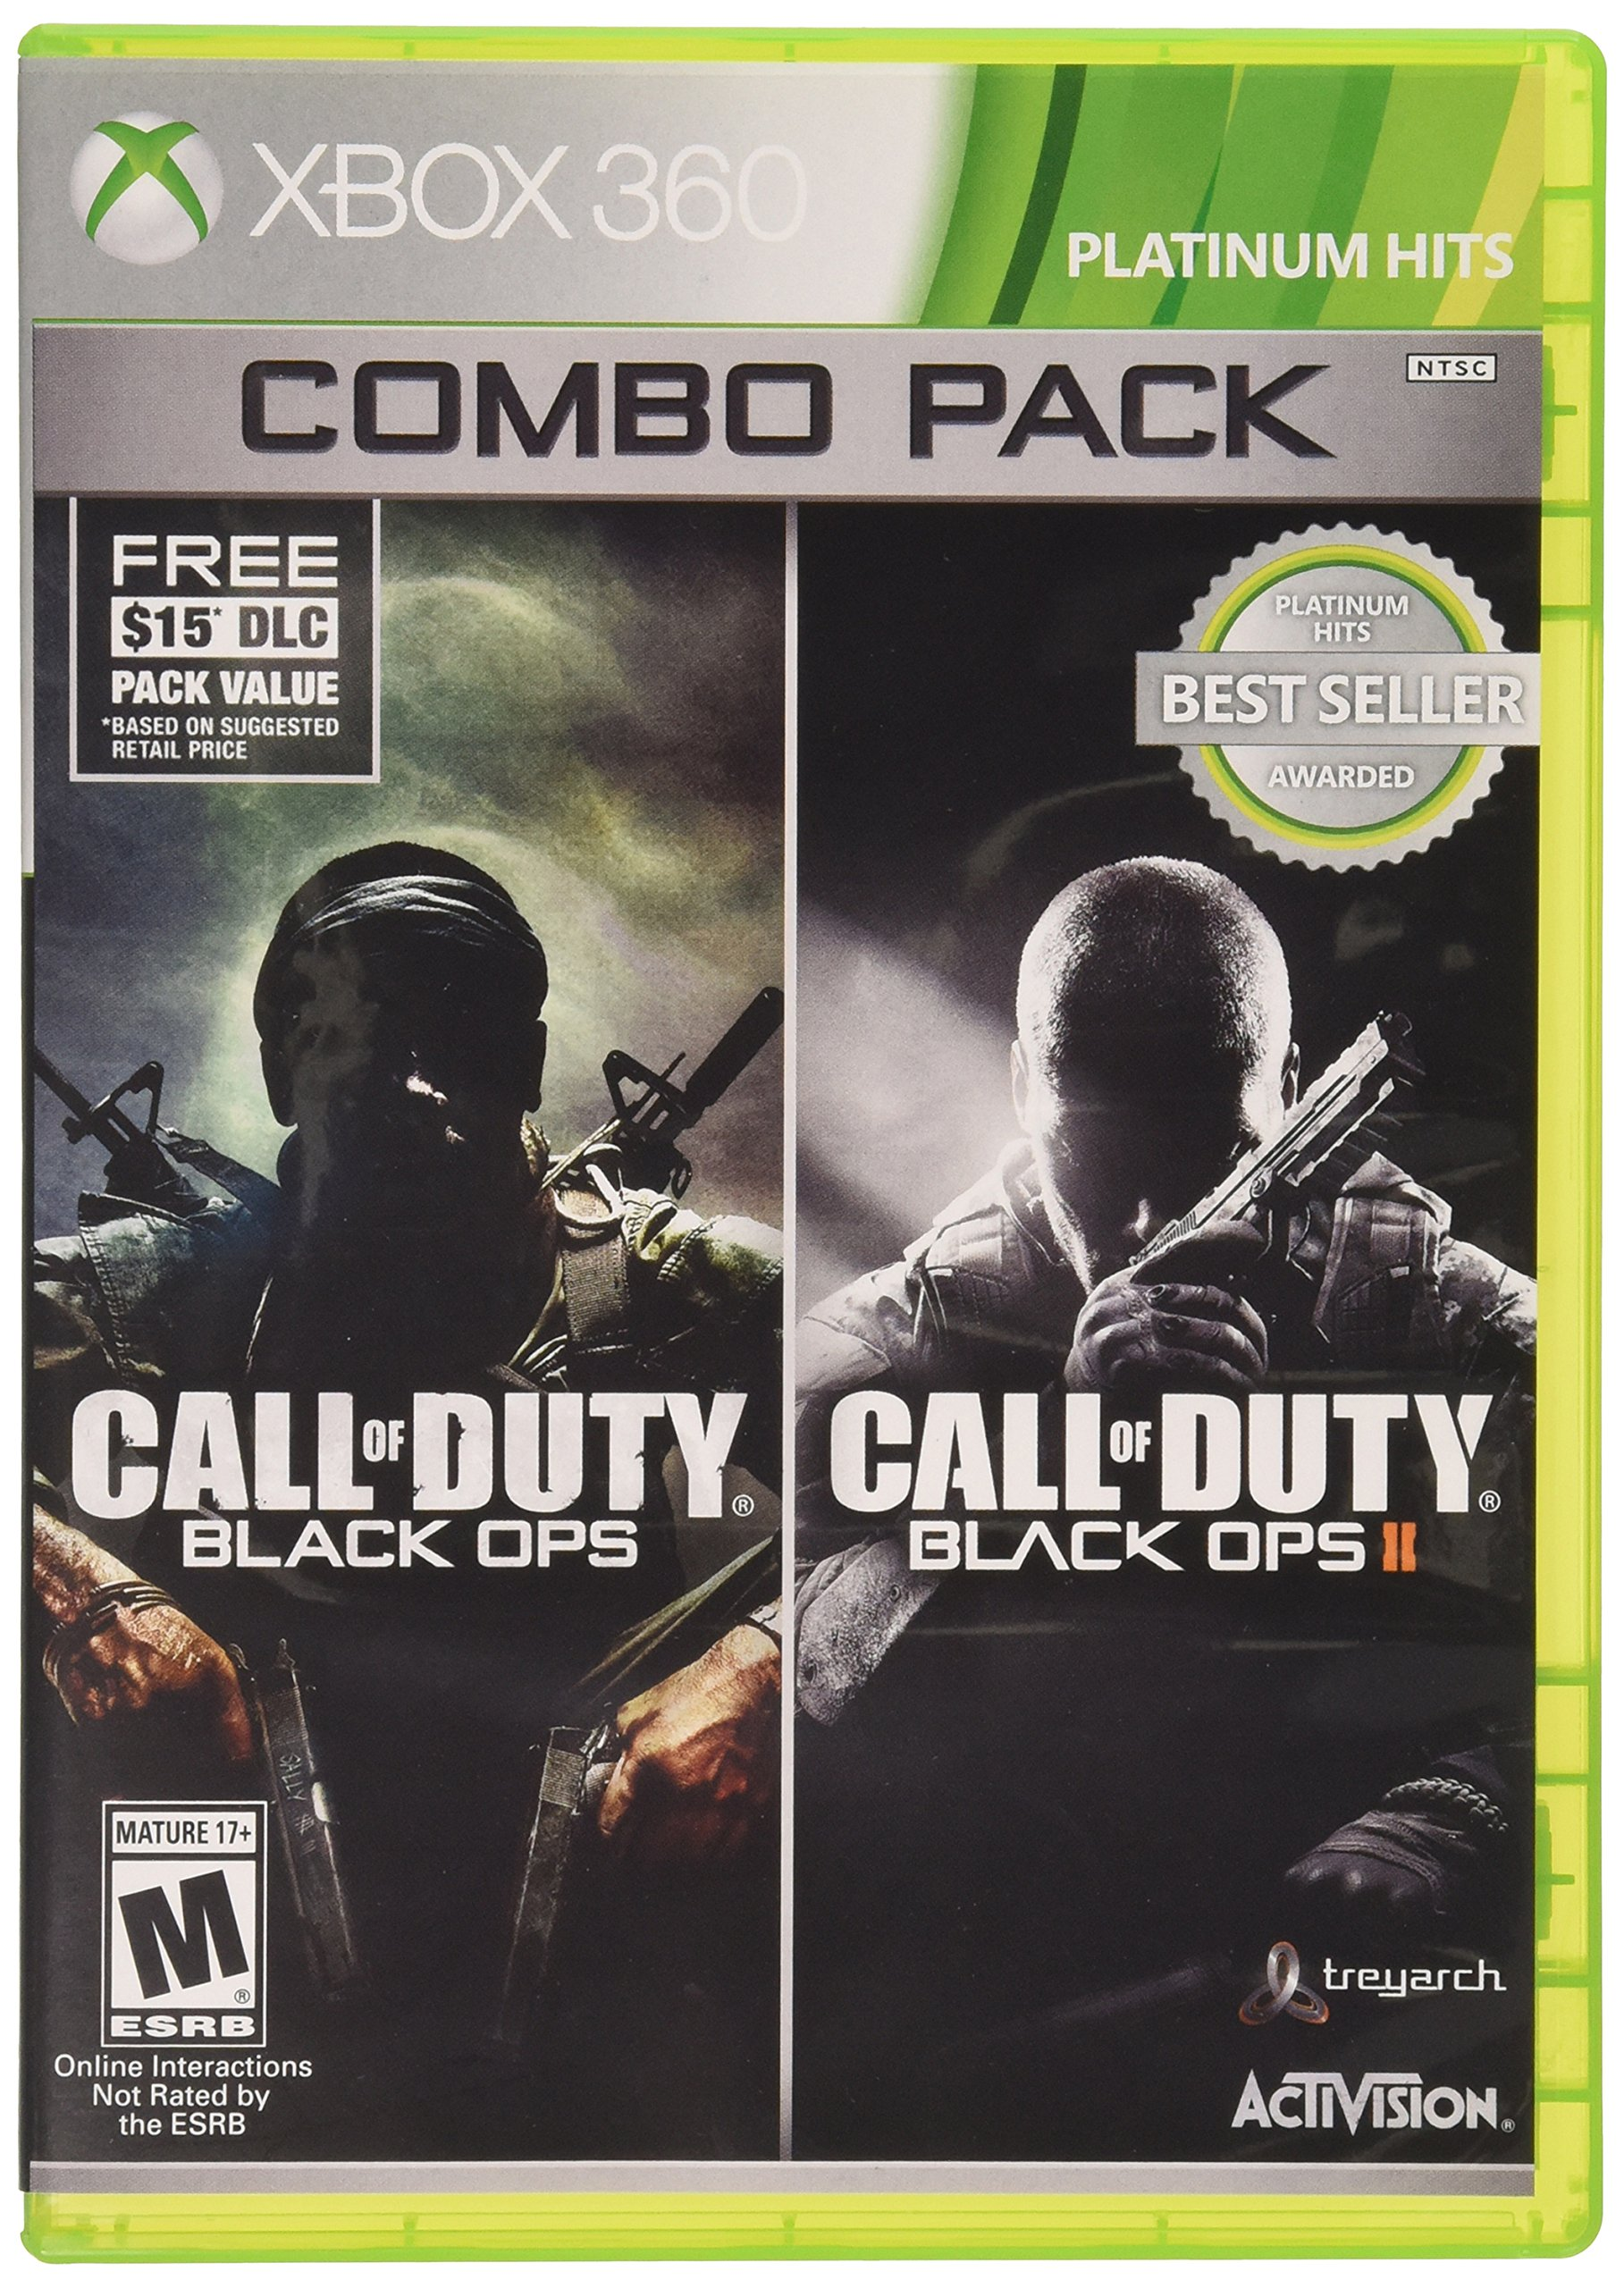 Call of Duty: Black Ops Combo Pack - Xbox 360 by Activision (Image #1)